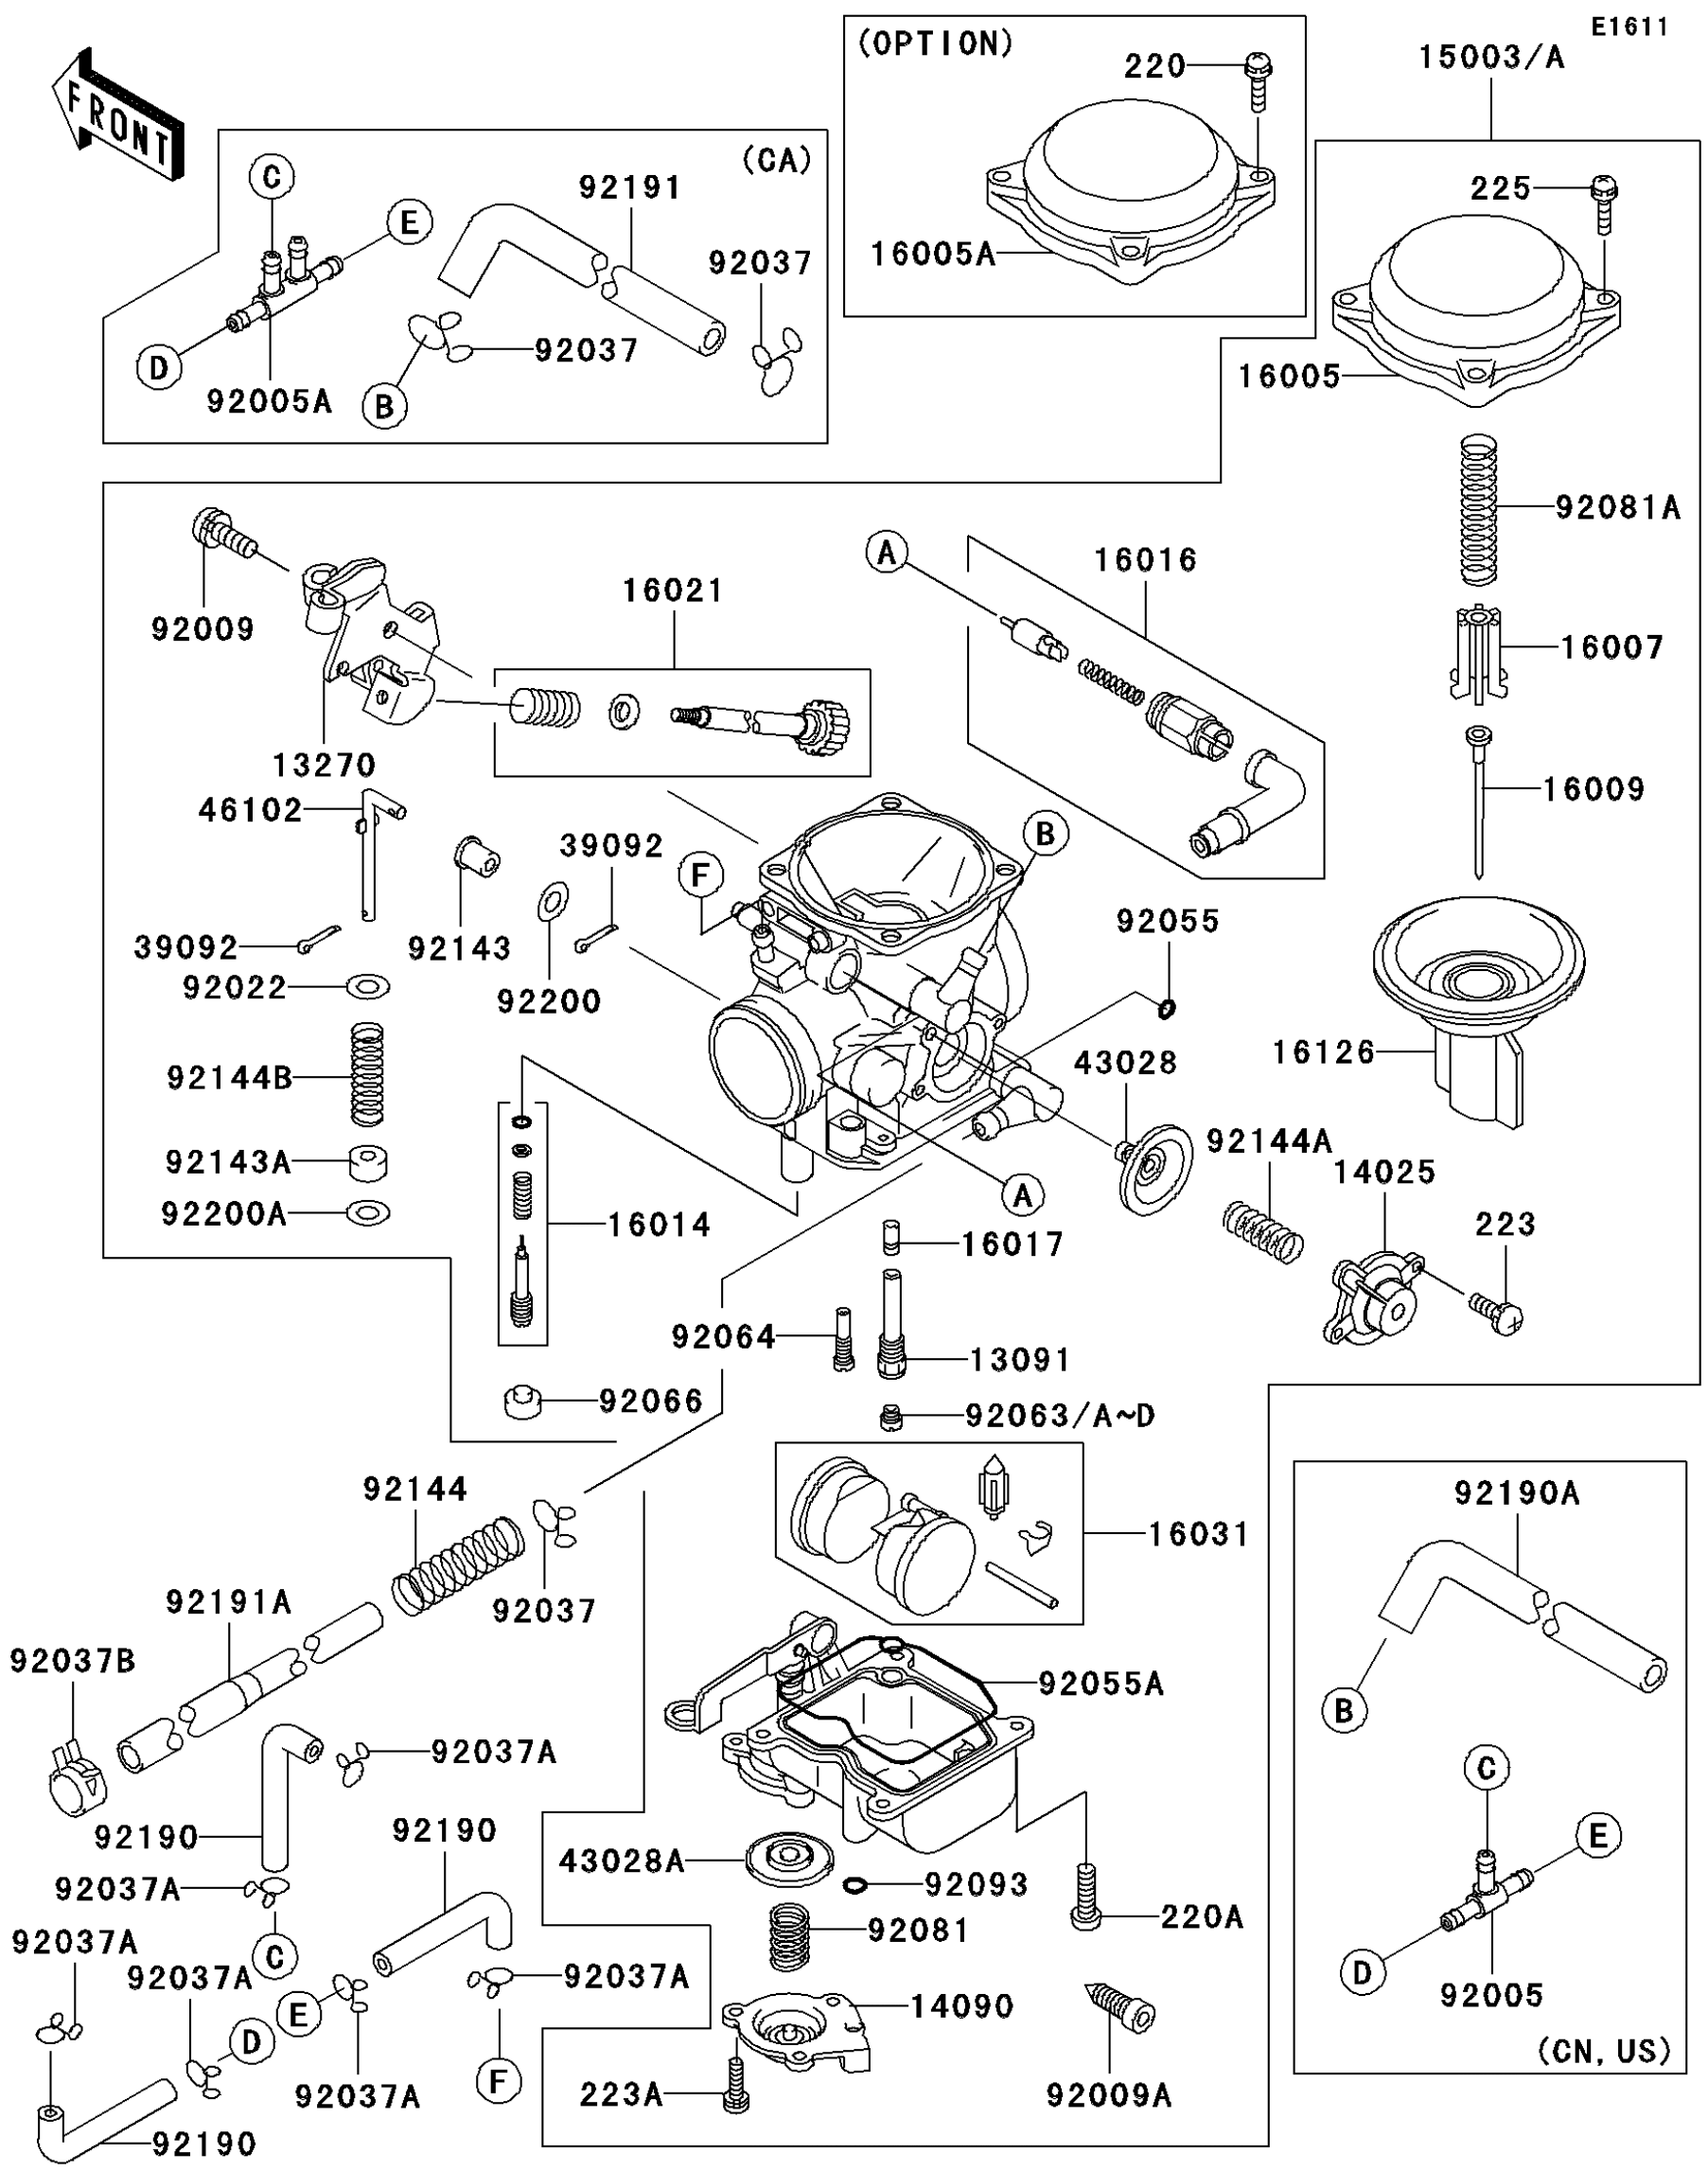 Carburetor Help Advice Desperately Needed